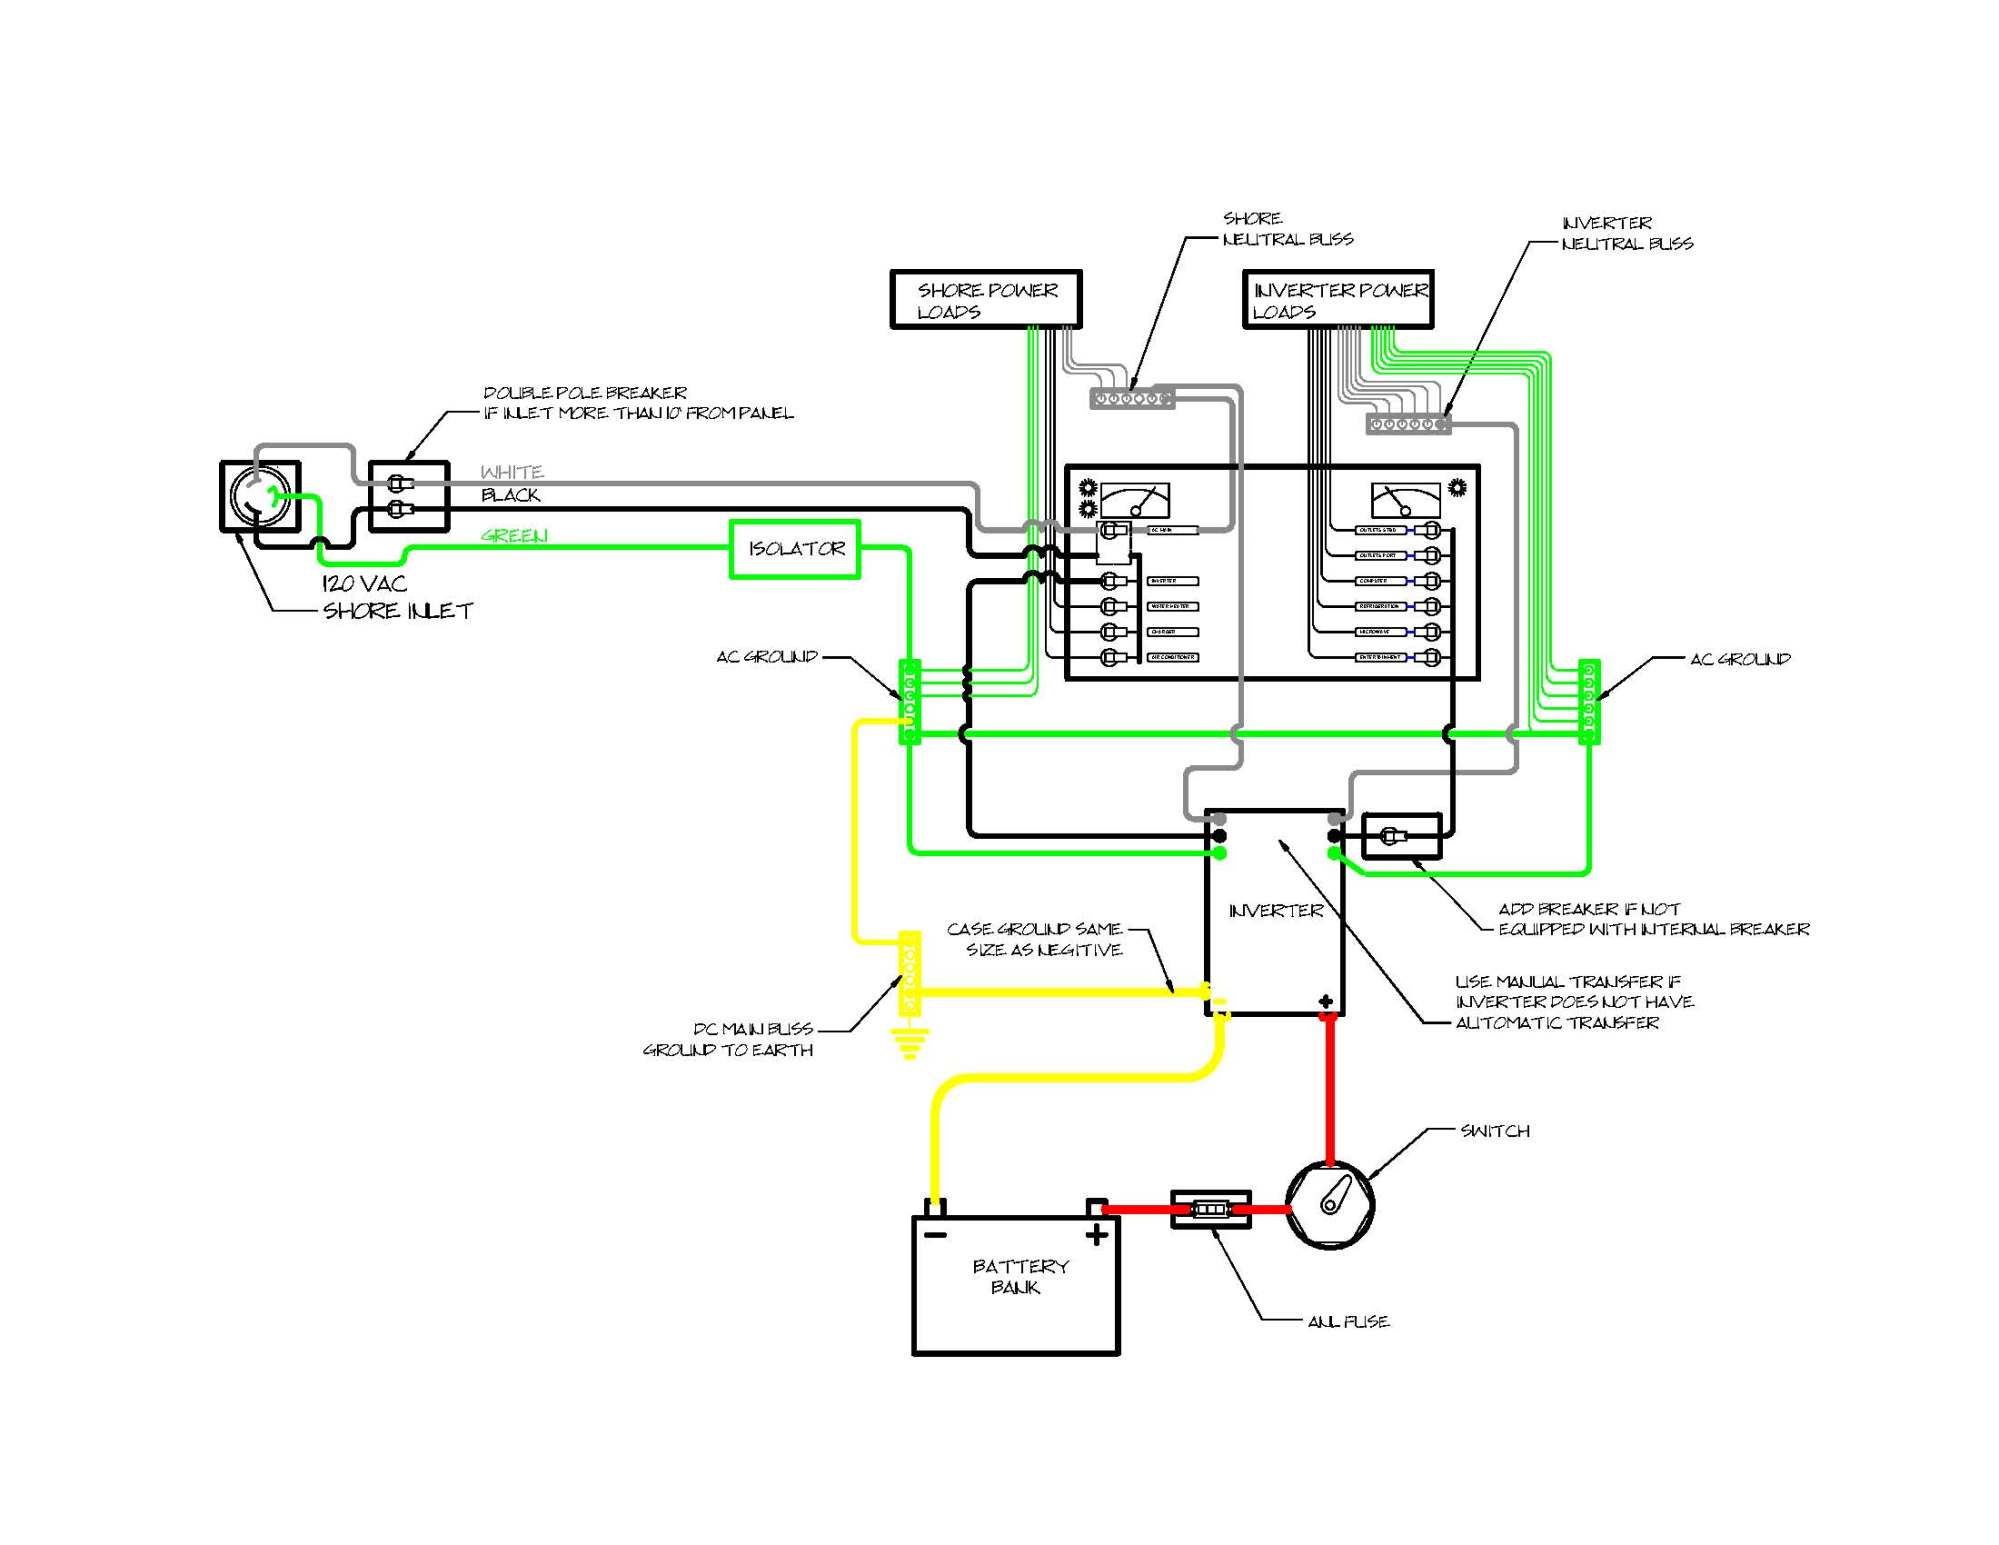 hight resolution of understanding inverter installations project boat zen ac generator design simple ac generator diagram